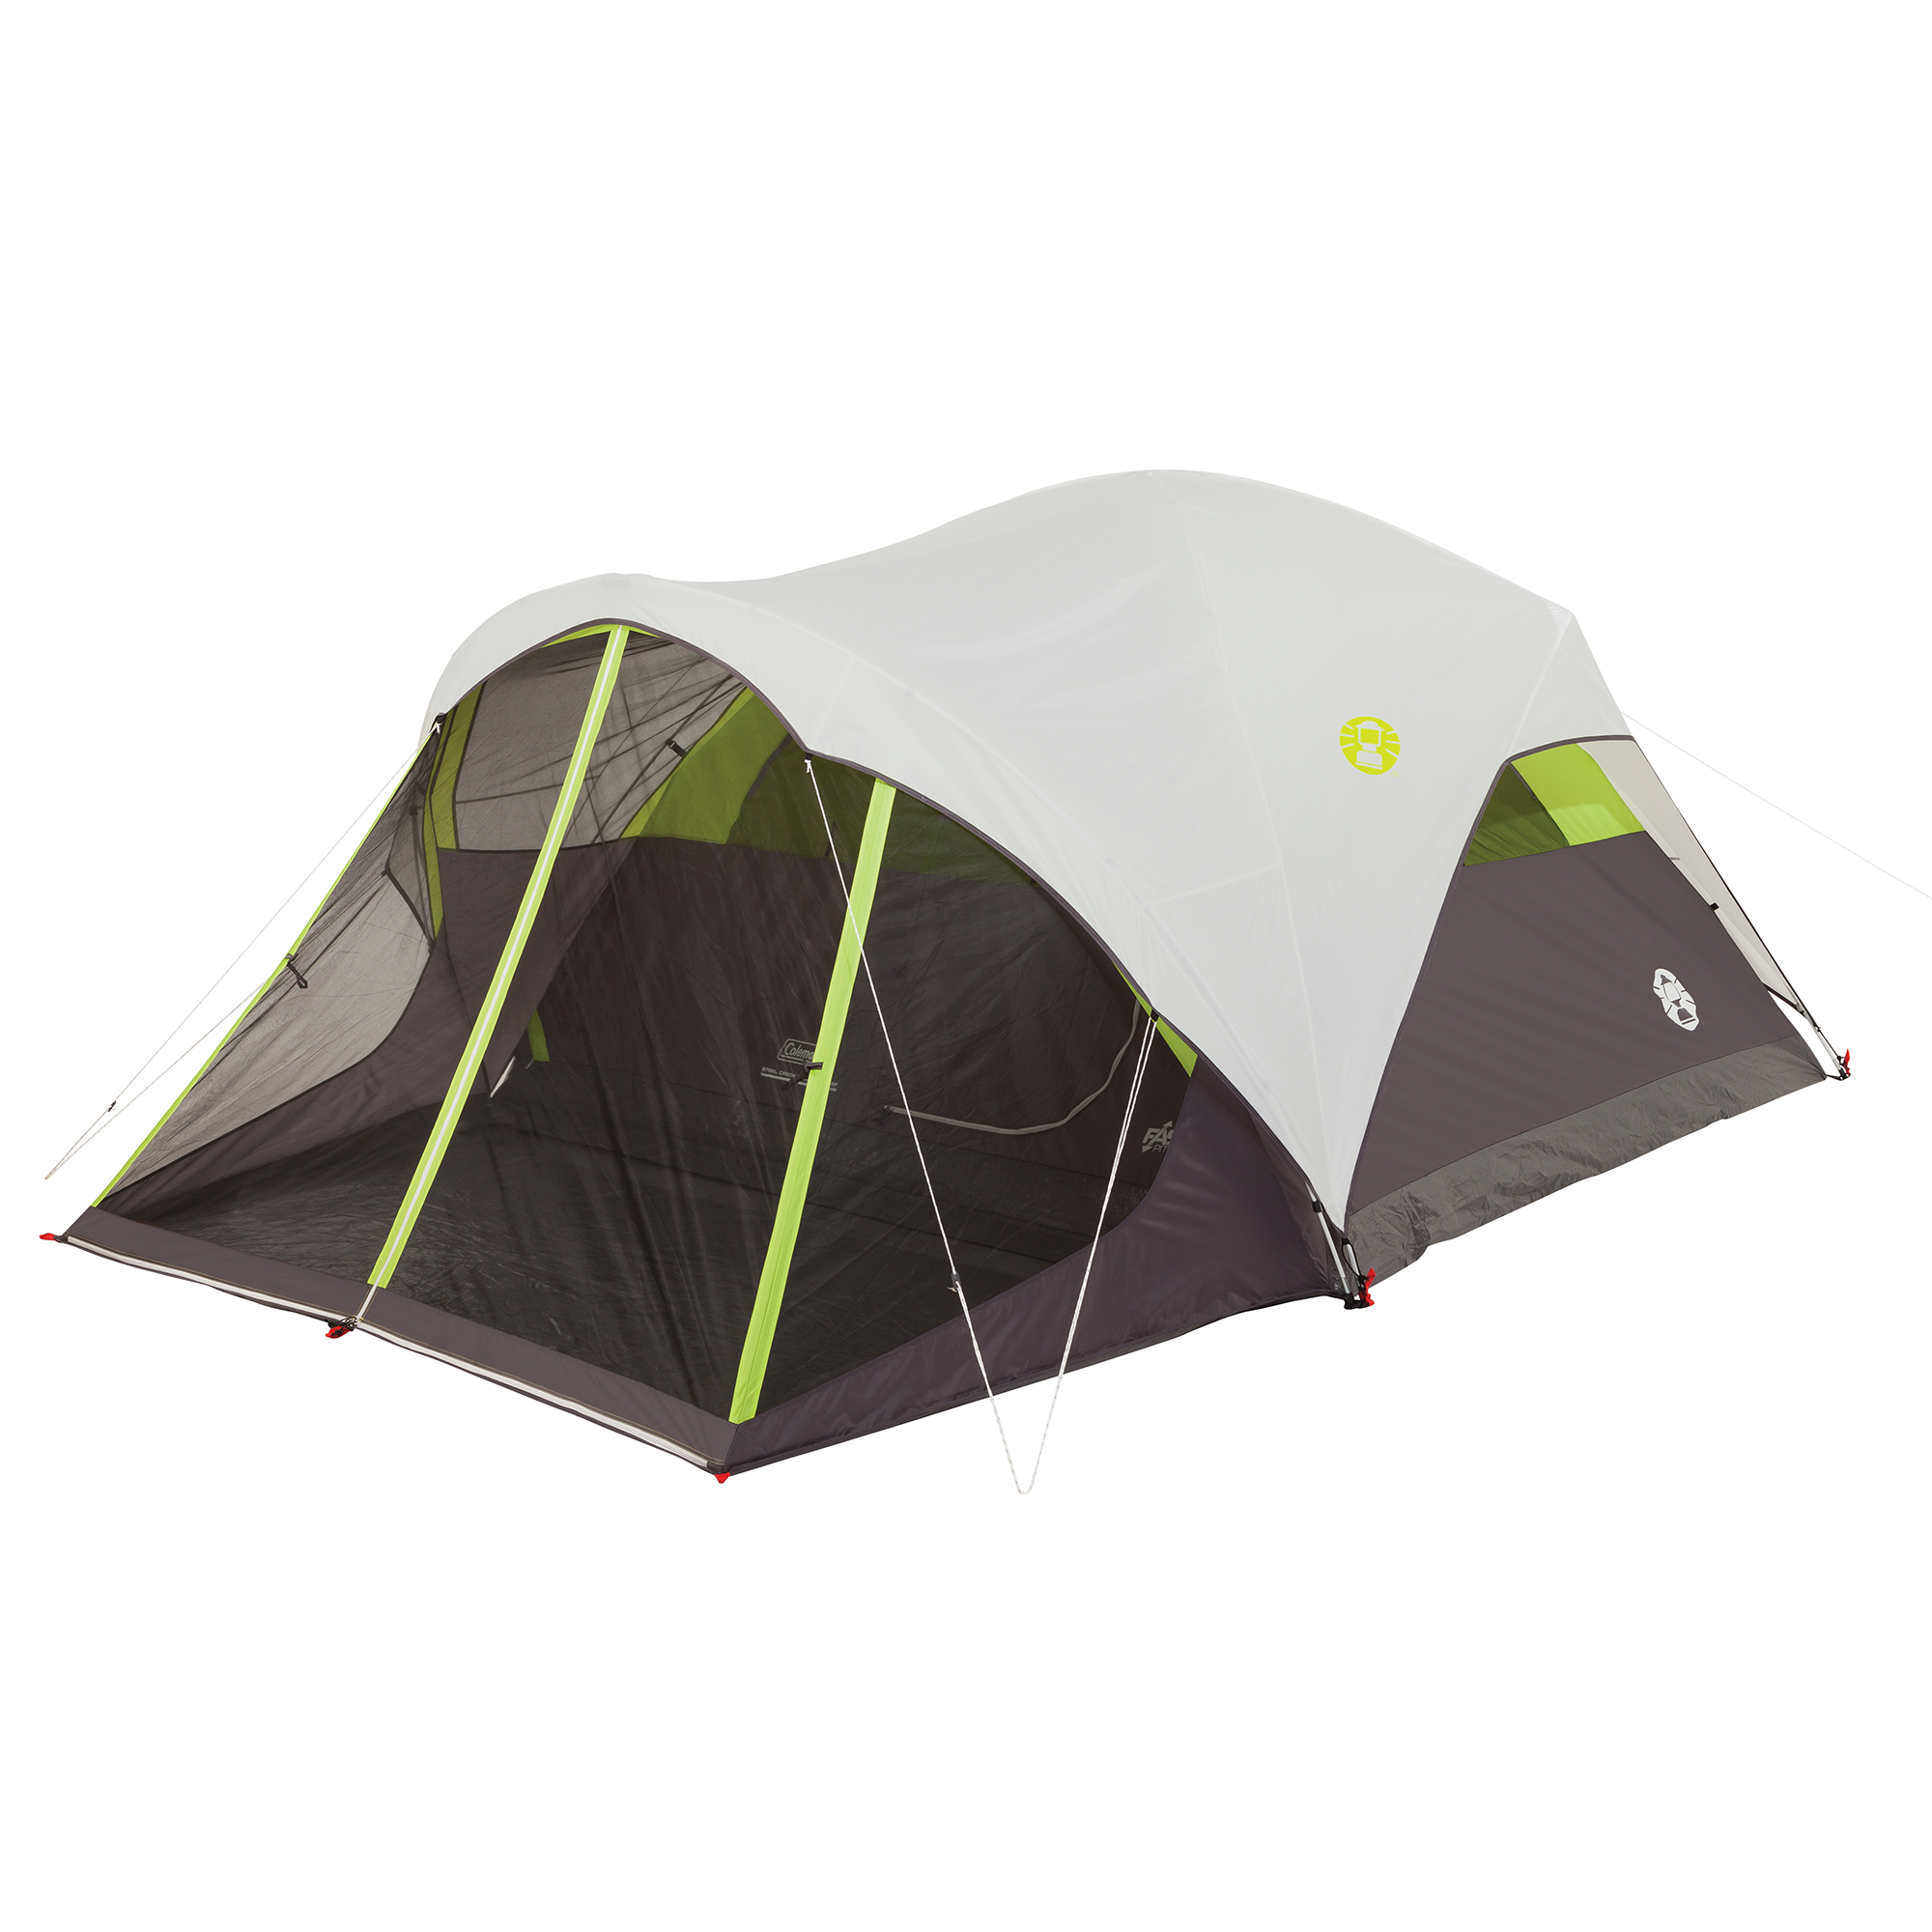 Coleman Steel Creek Fast Pitch 6-Person Dome Tent with Screen Room by COLEMAN